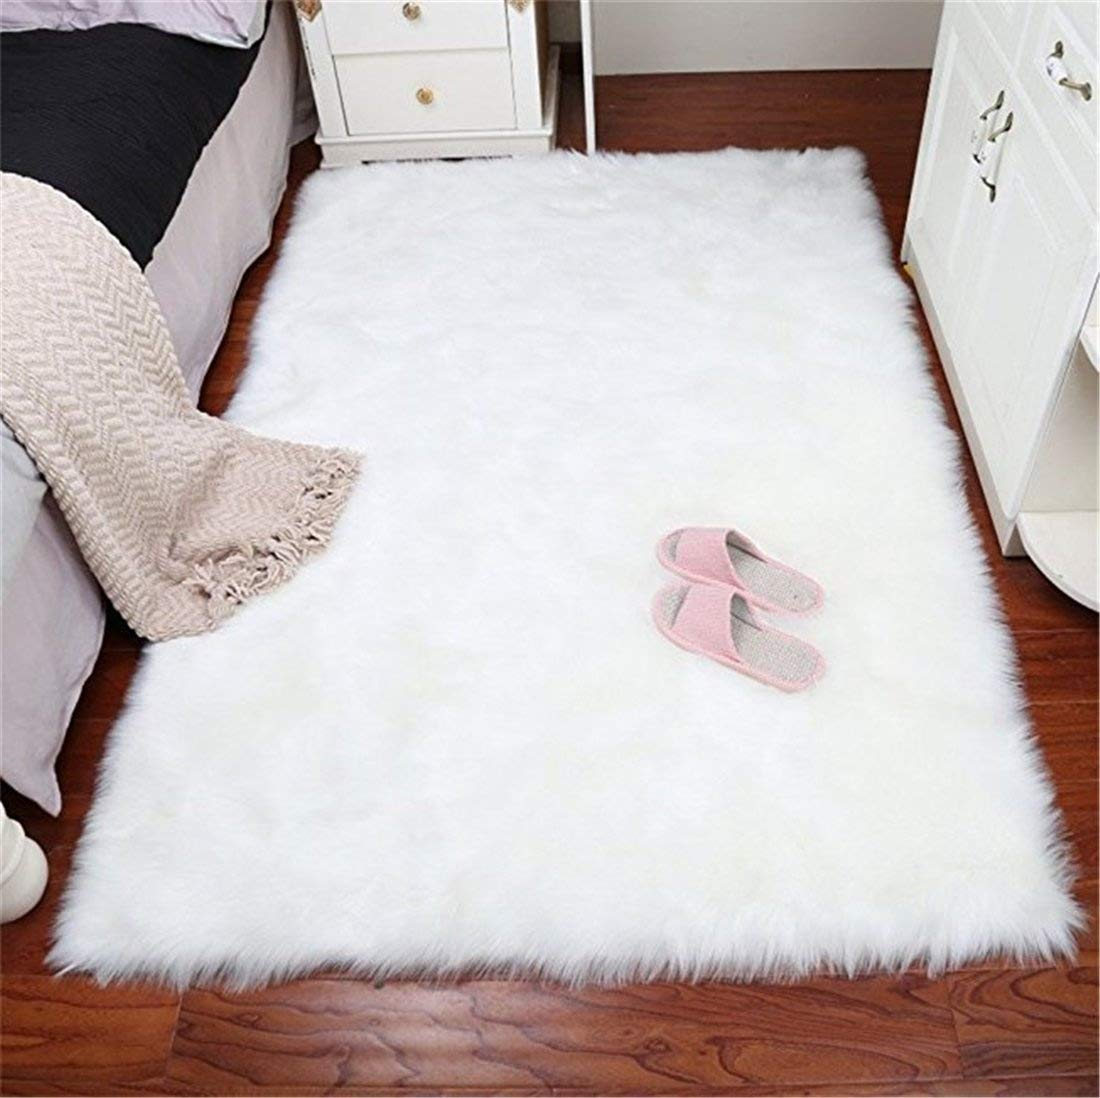 Faux Sheepskin Area Rug Chair Cover Seat Pad Plain Shaggy Area Rugs For Bedroom Sofa Floor